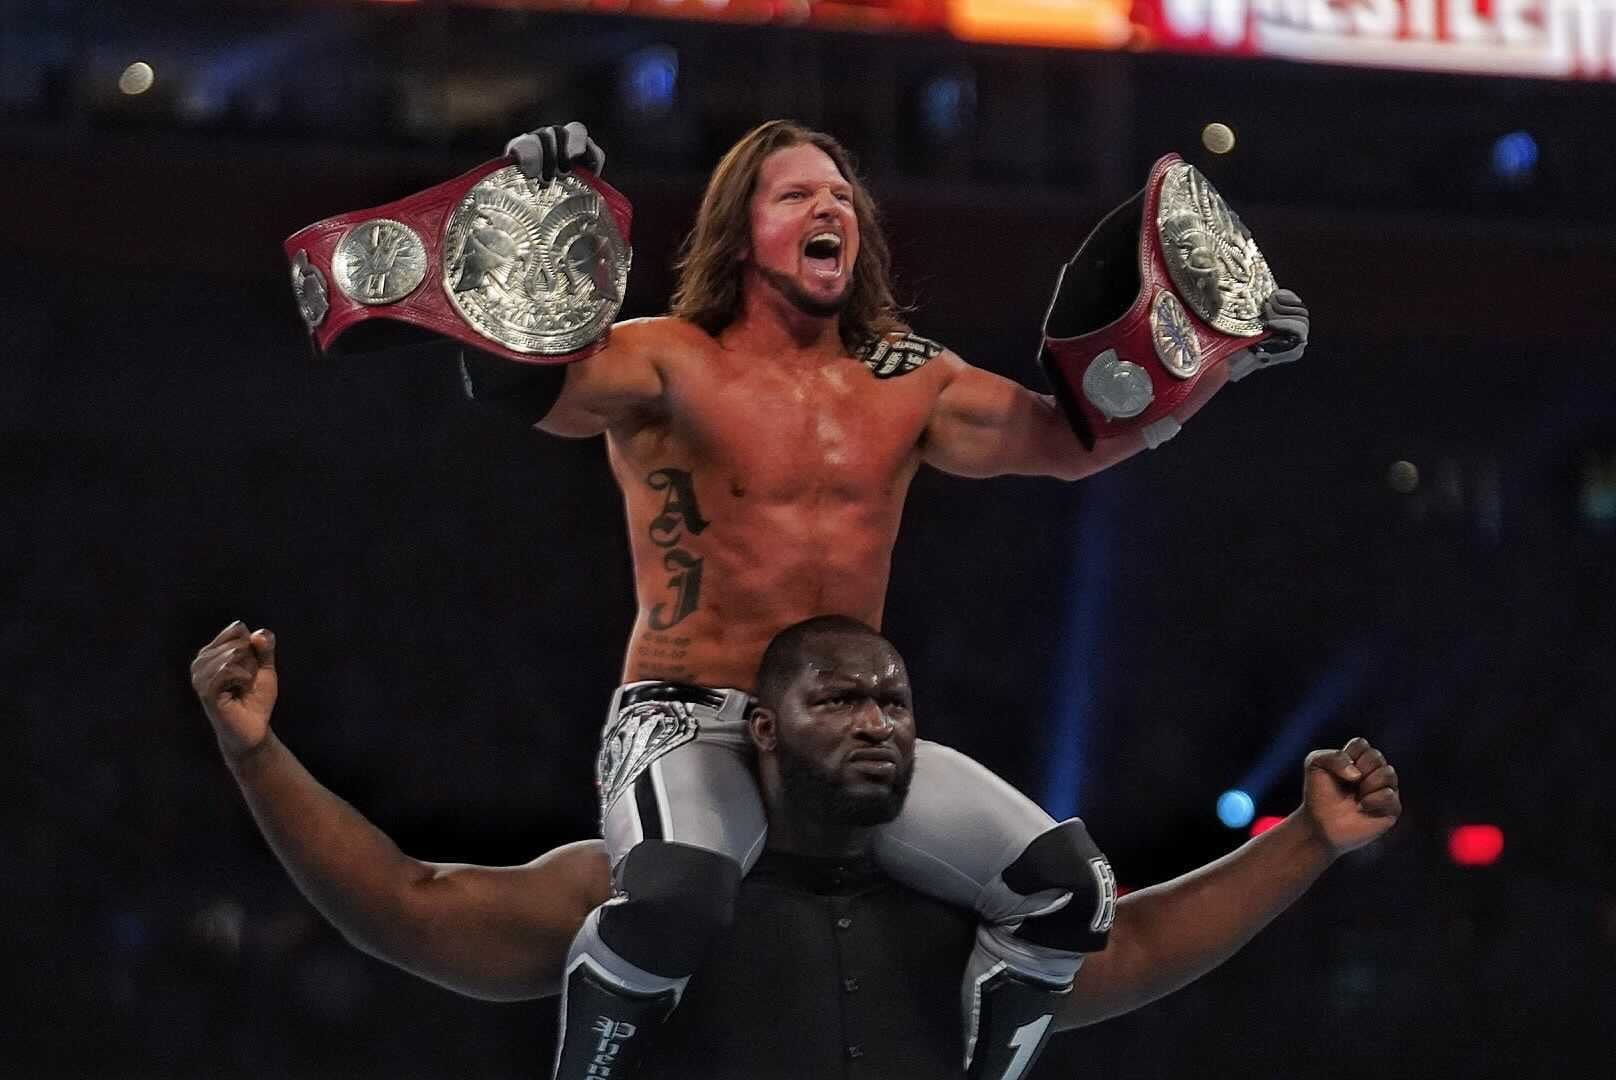 AJ Styles Names The Match He Sees For Himself And Omos At WWE SummerSlam